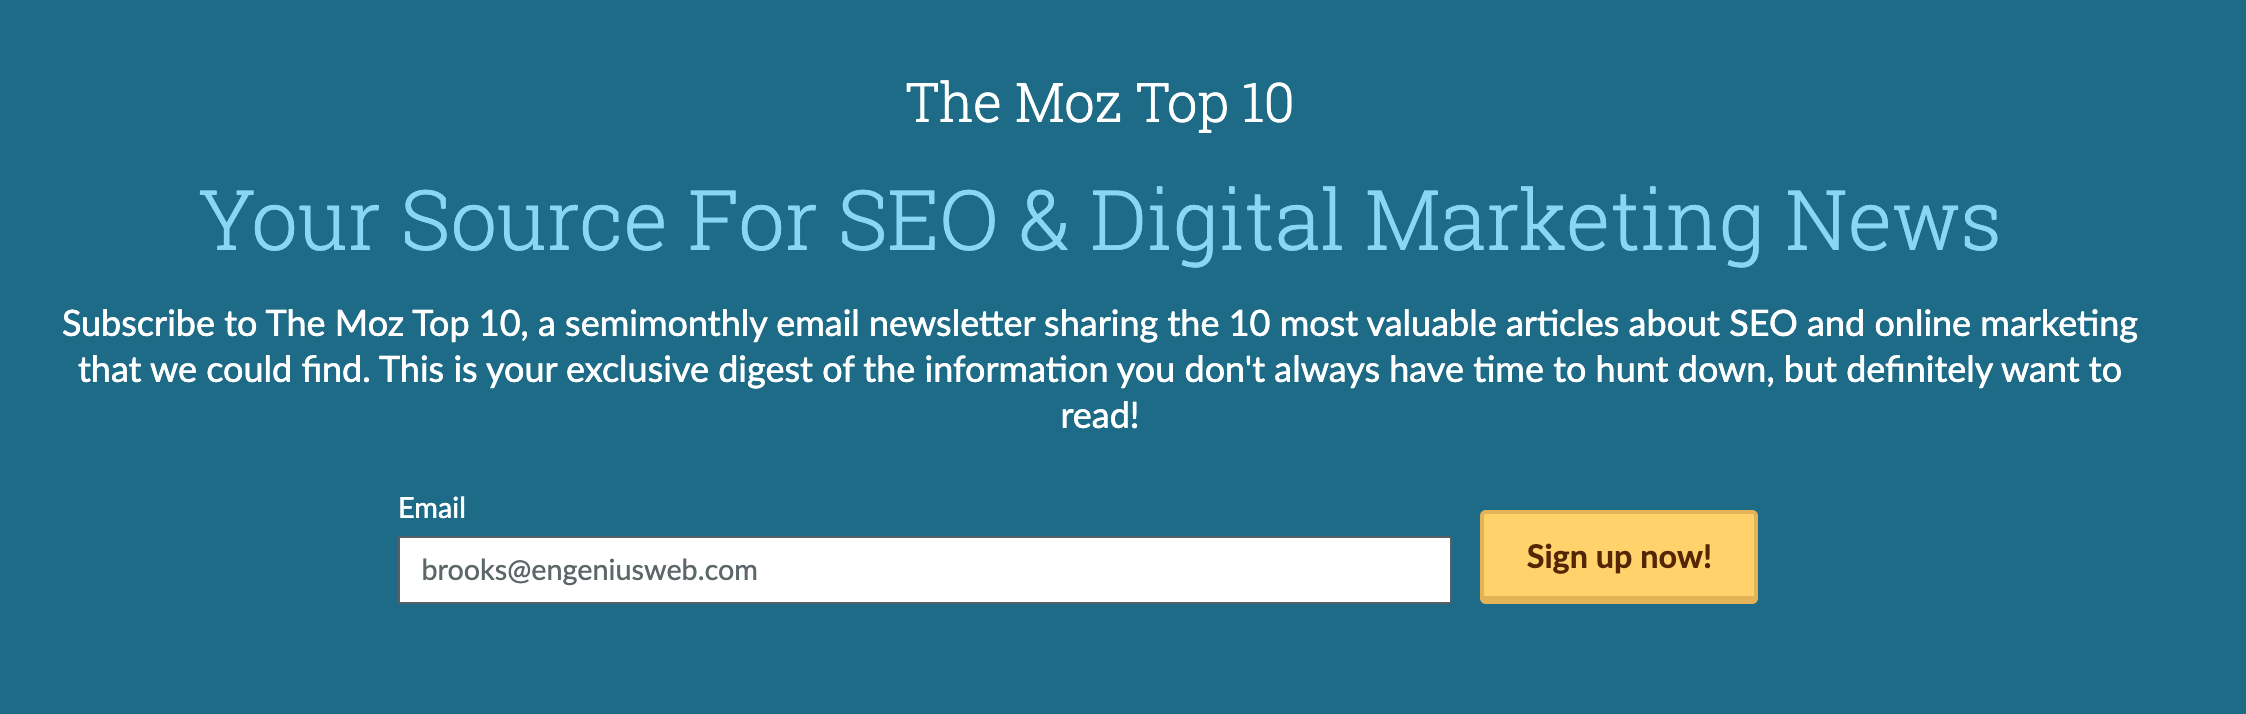 moz top ten newsletter